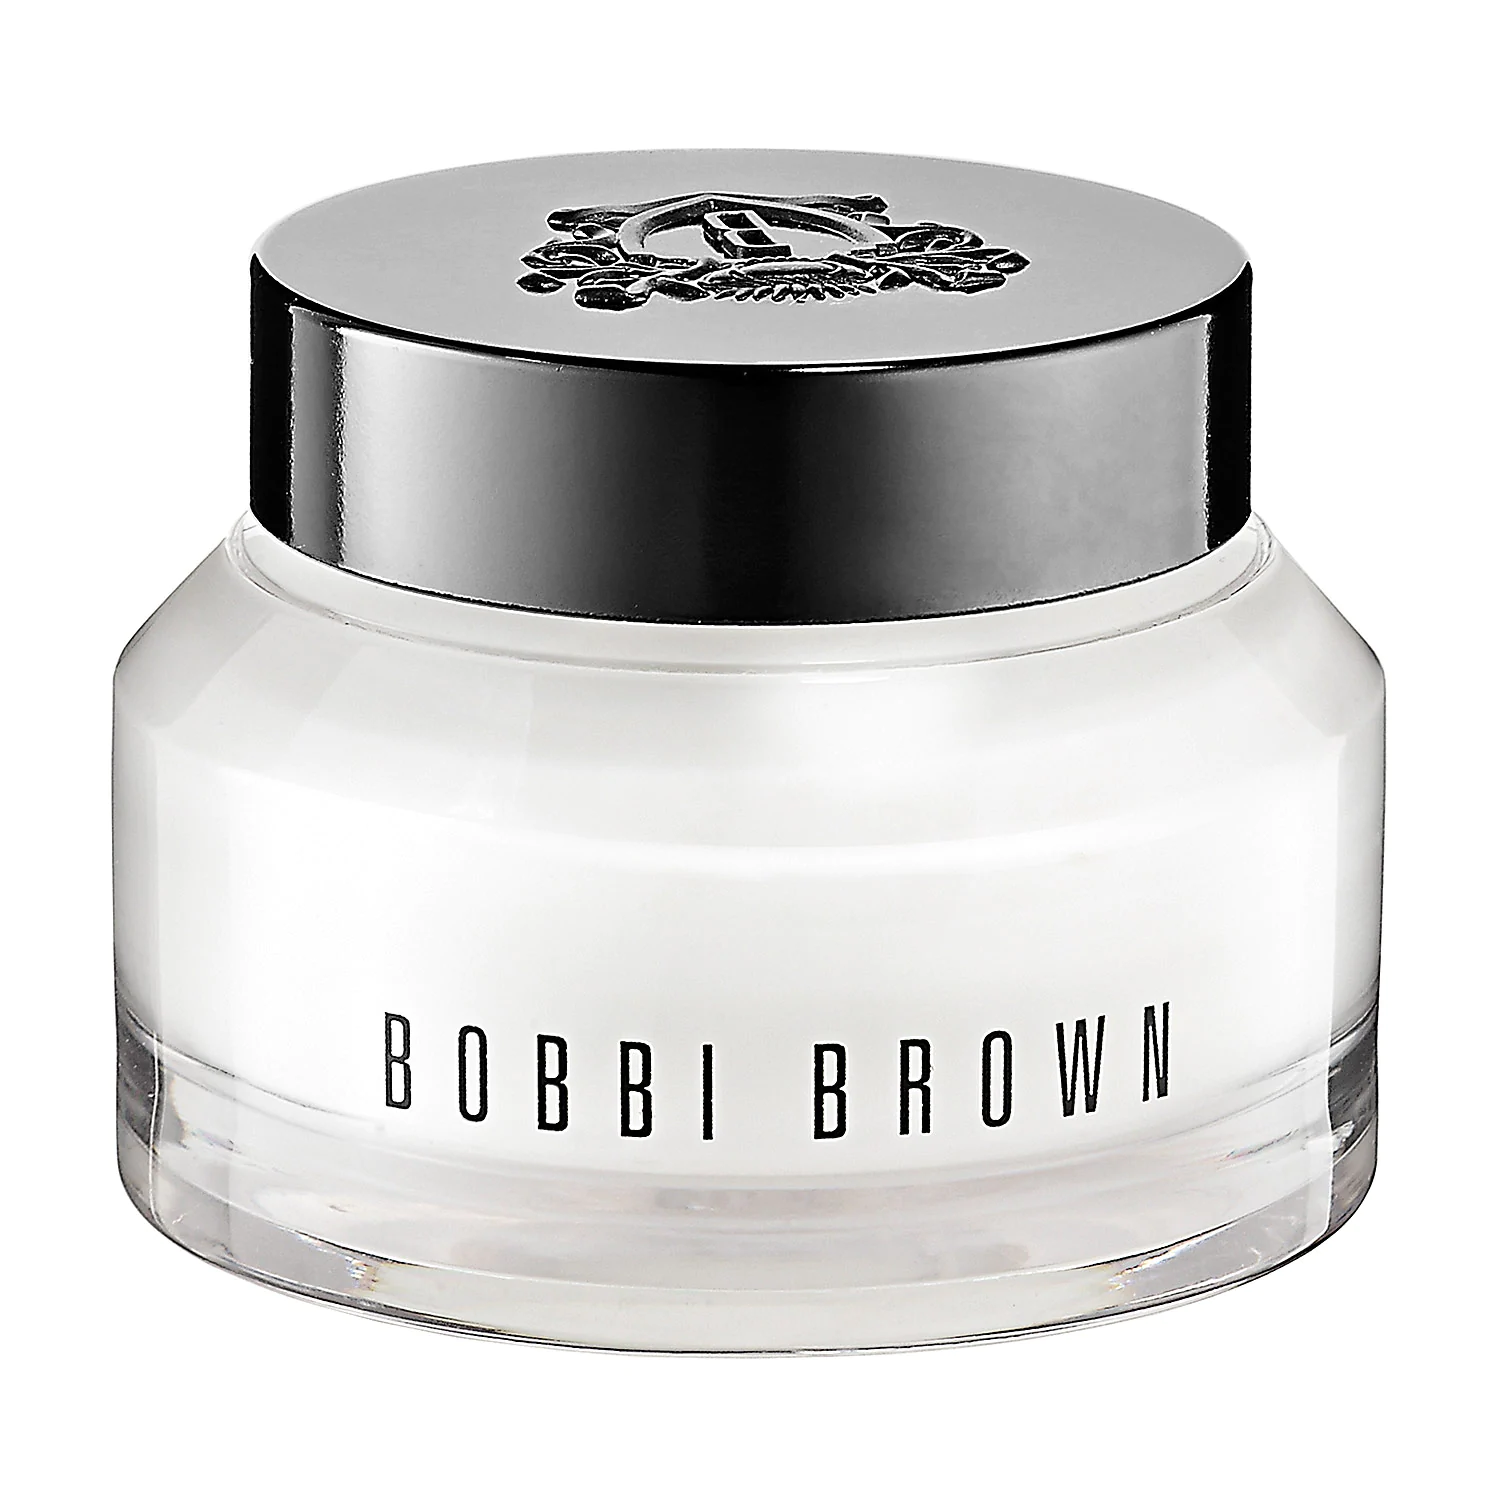 Bobbi Brown Hydrating Face Cream Moisturizer